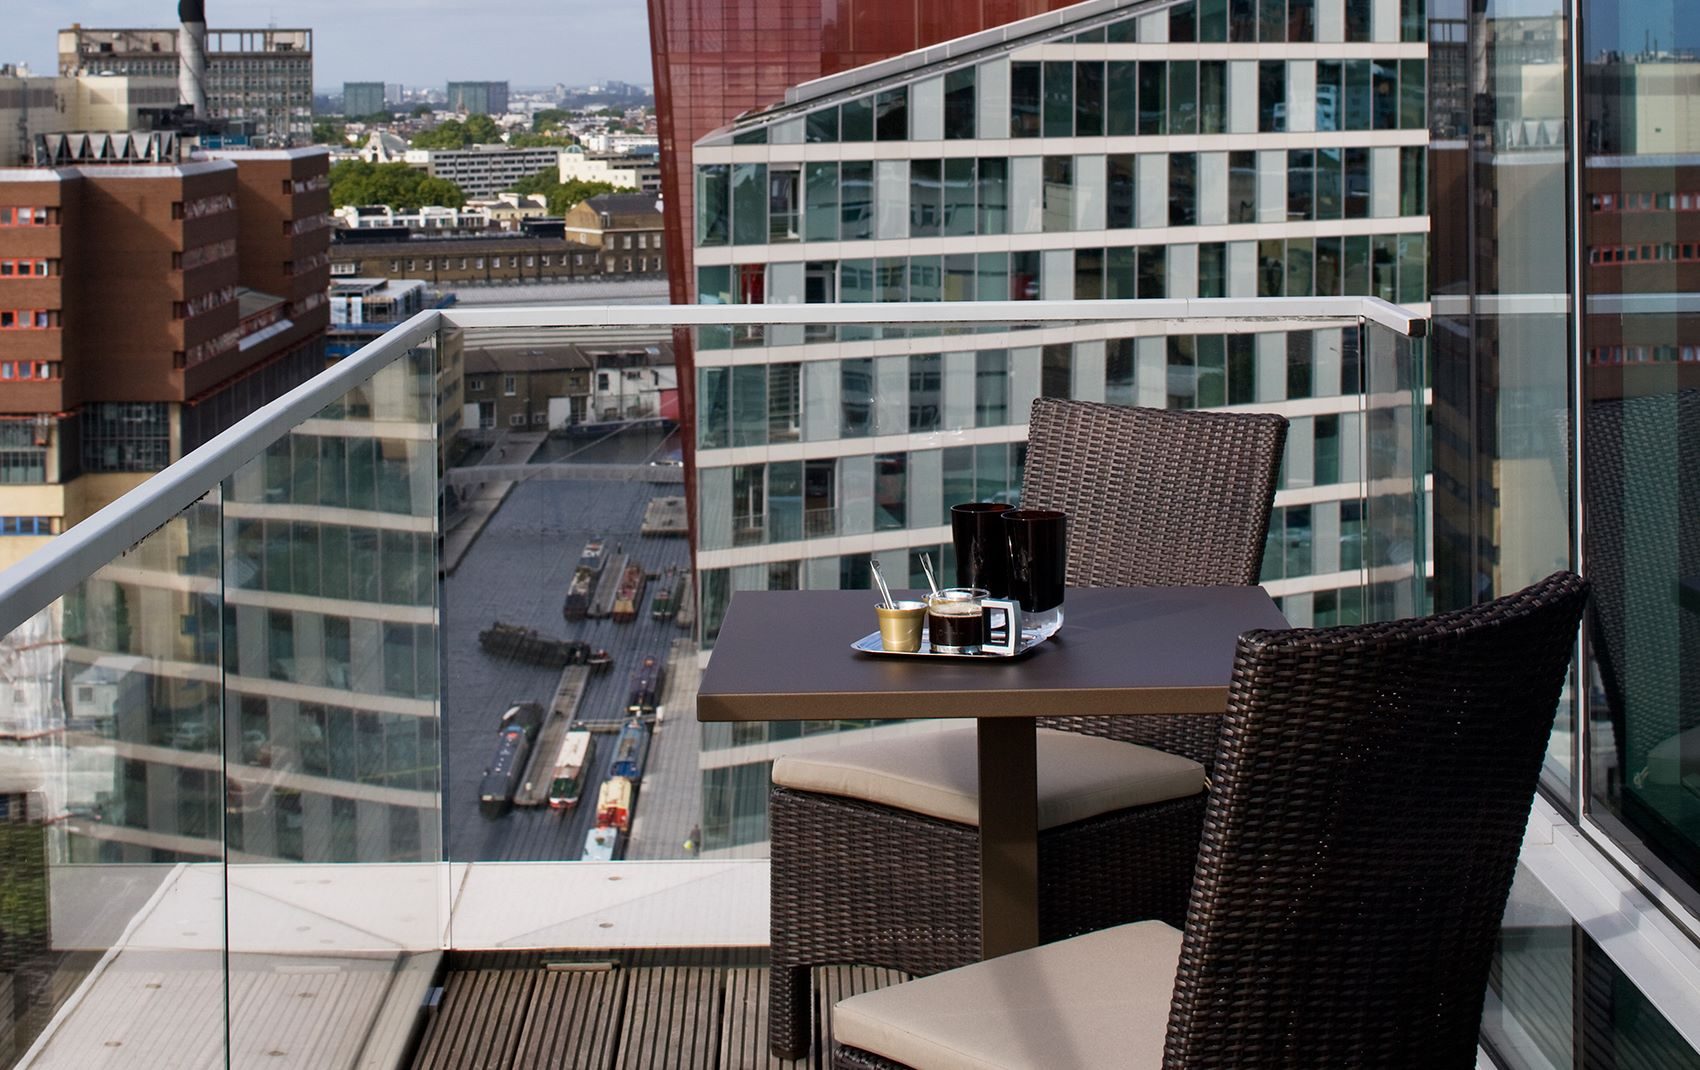 west london penthouse - balcony overlooking london